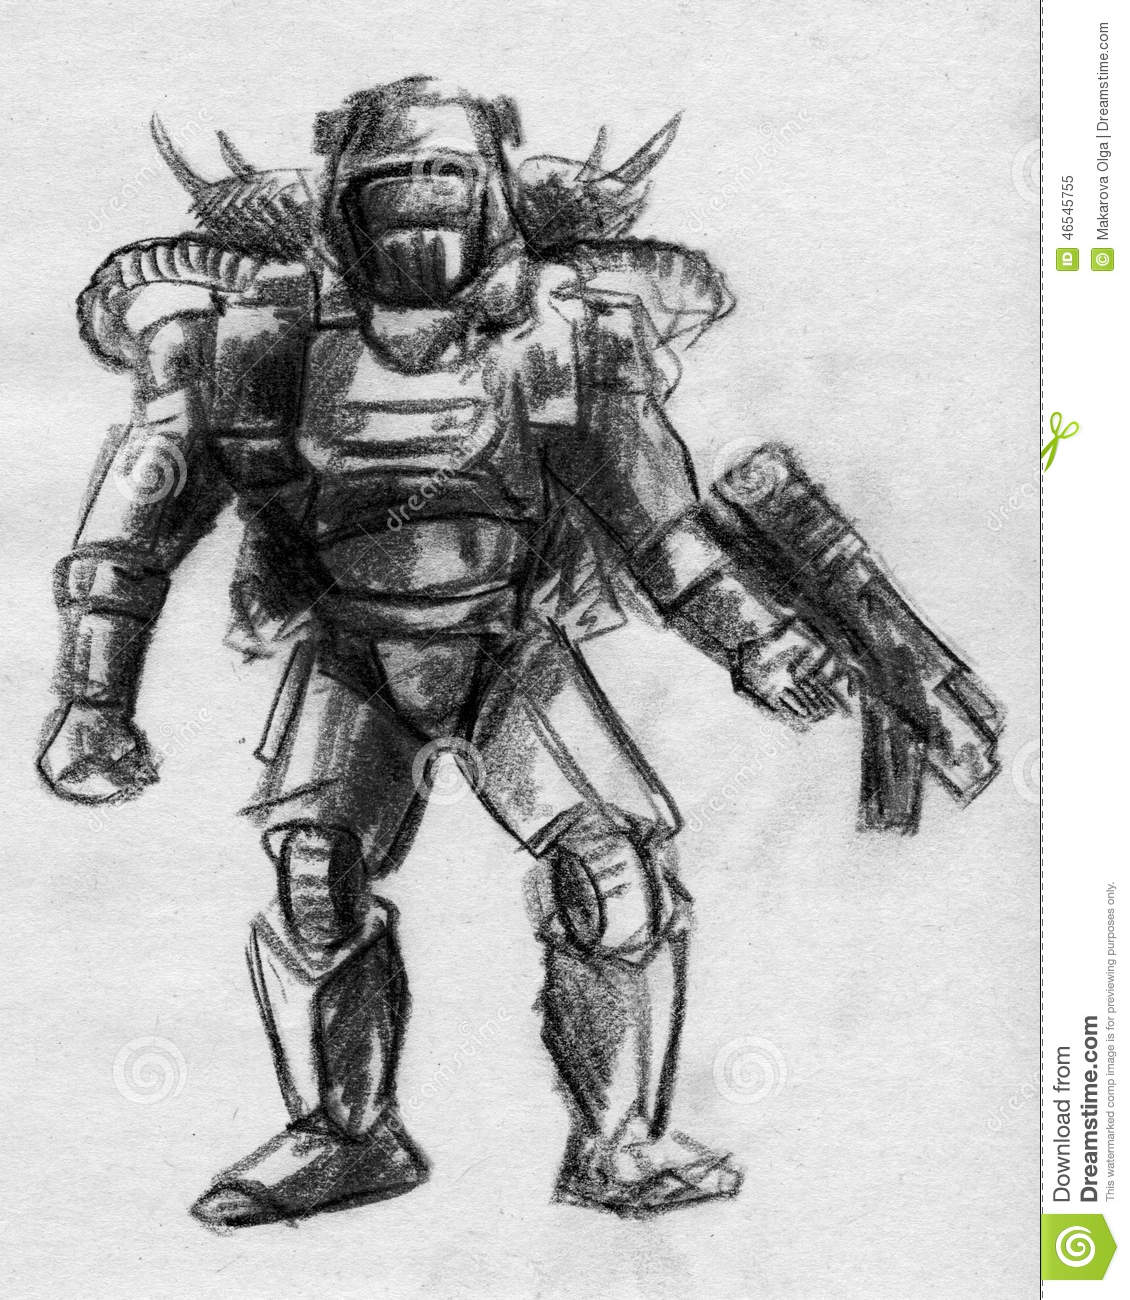 Hand drawn pencil sketch of a sci fi cyborg soldier wearing heavy armor helmet and rifle